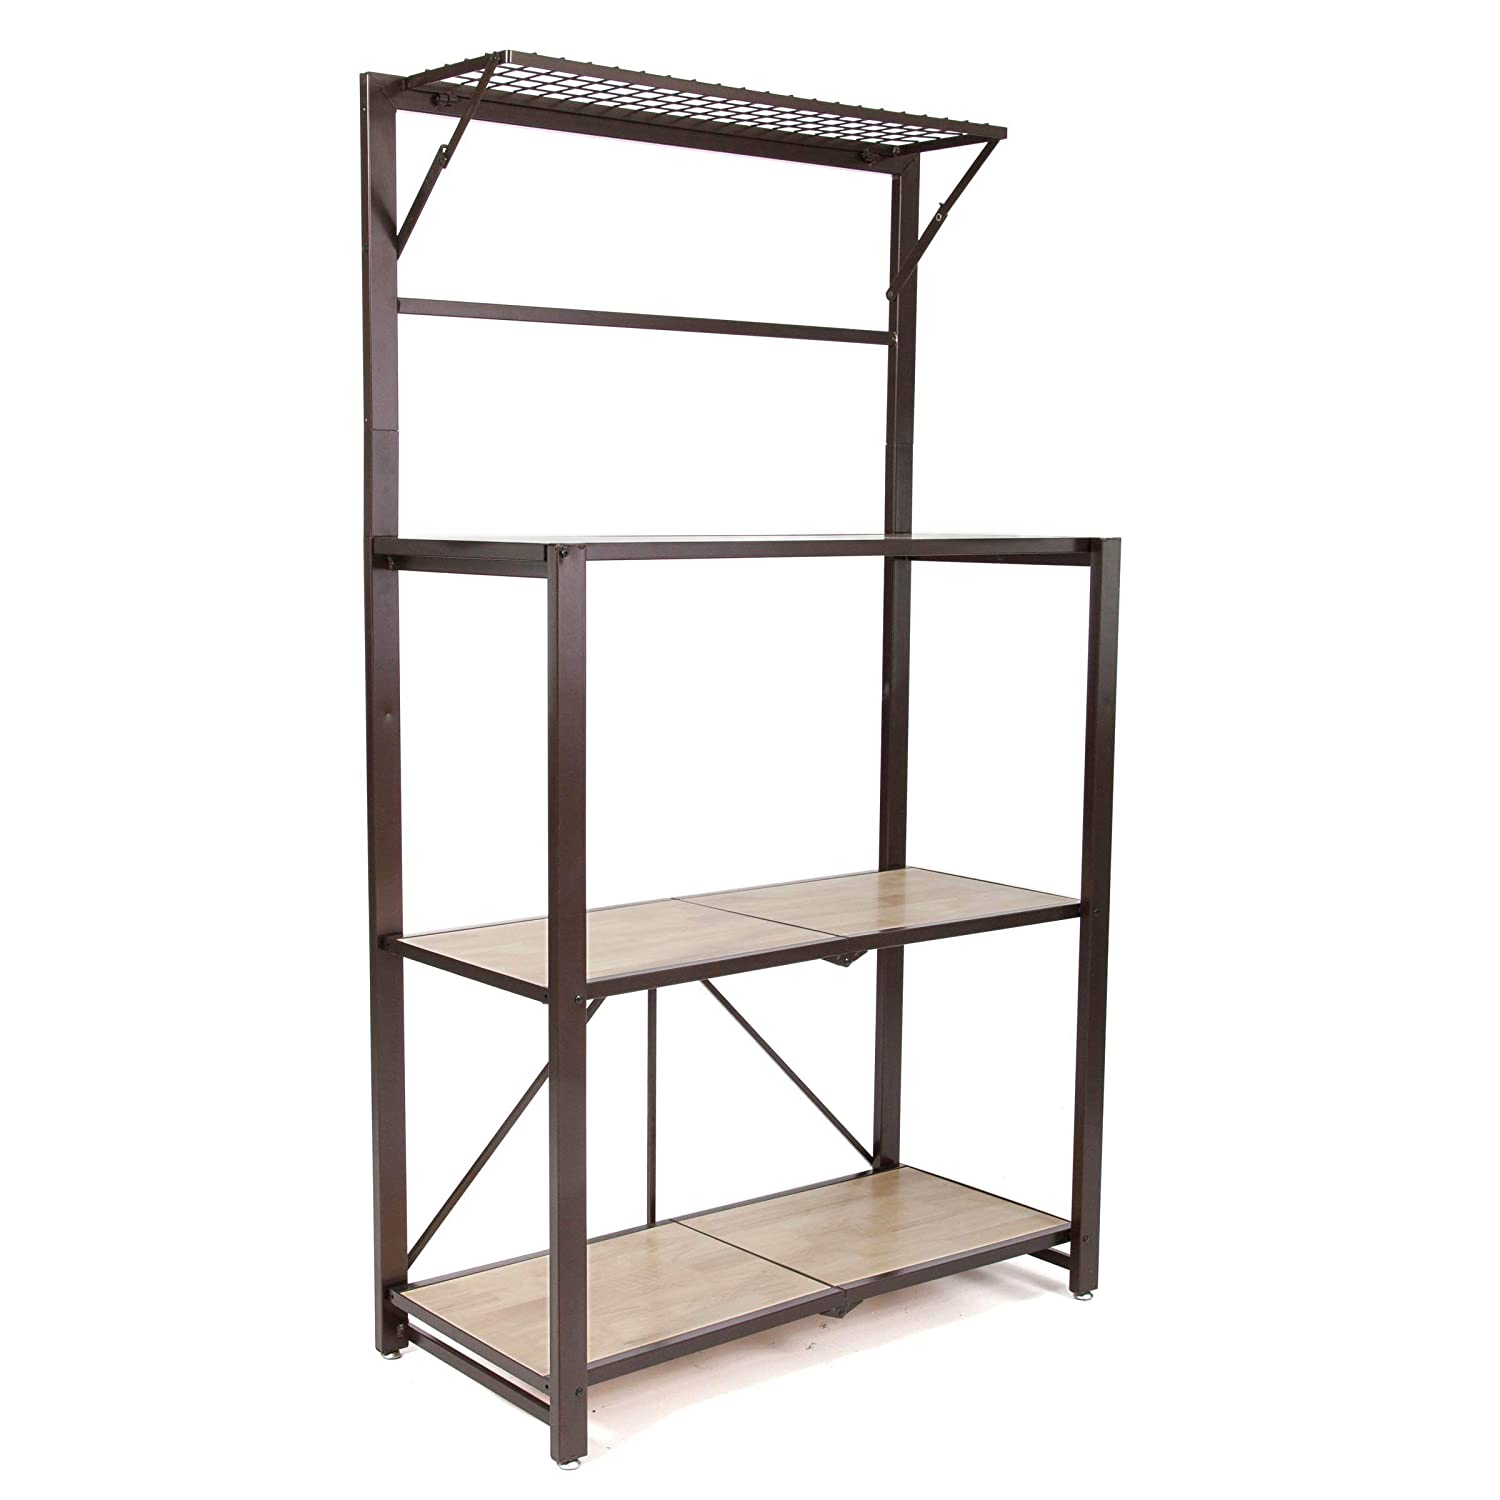 Origami Heavy Duty Durable Organizational Baker s Rack with Wood Shelf, Brown